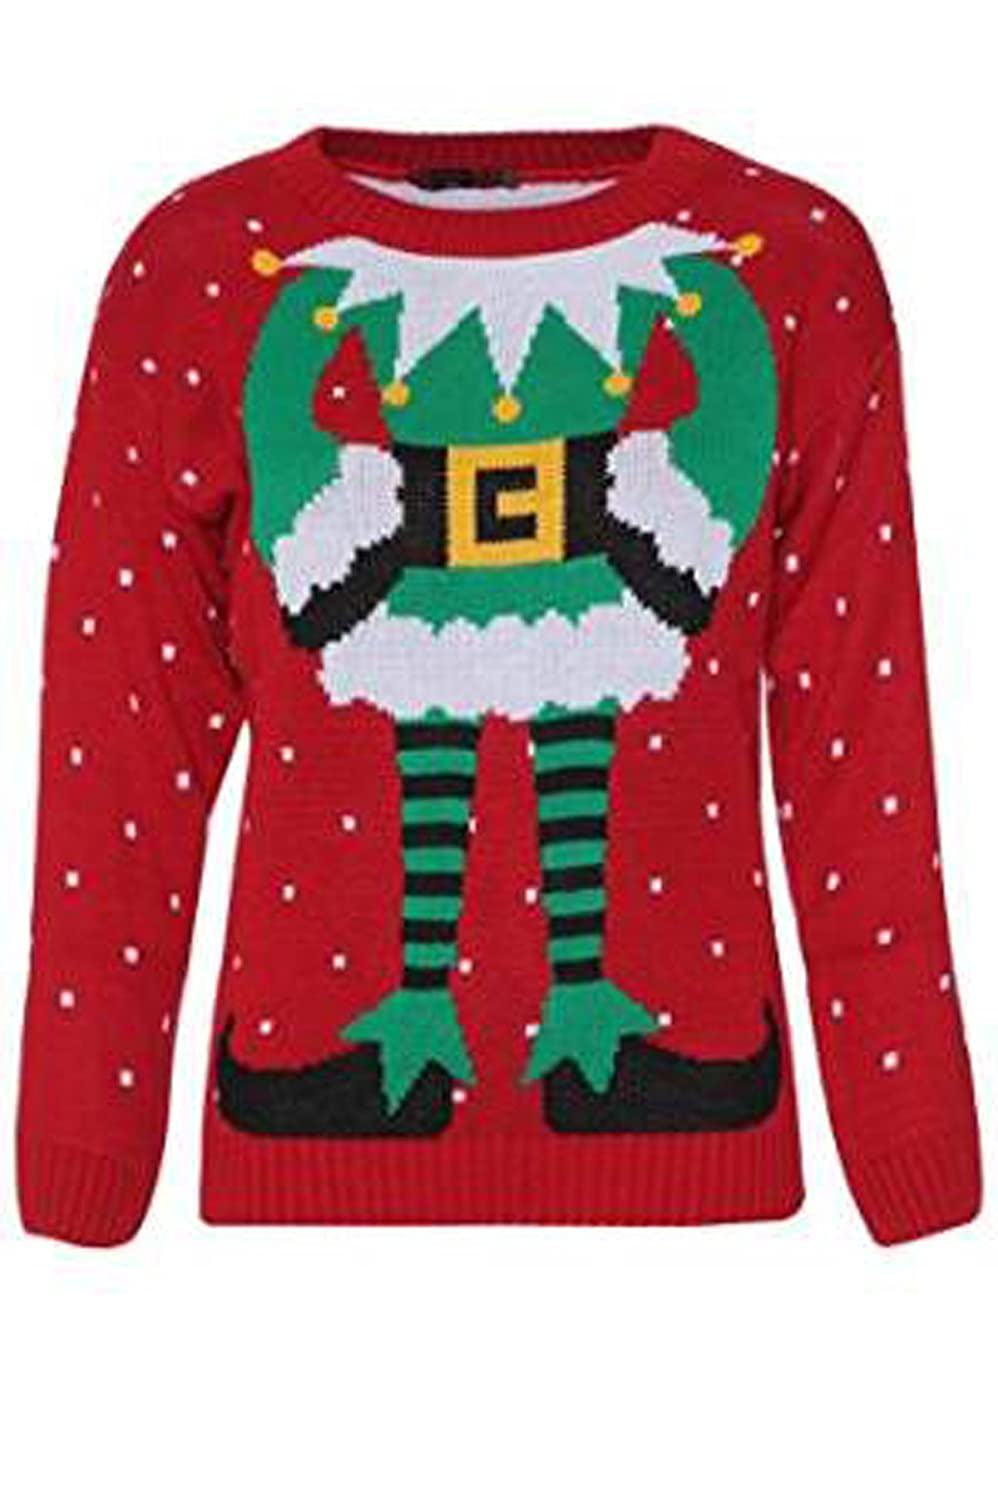 FashionMark Womens Celebrity Inspired Elf Body Print Knitted Christmas Jumper - 2 Colors - Size 6-12